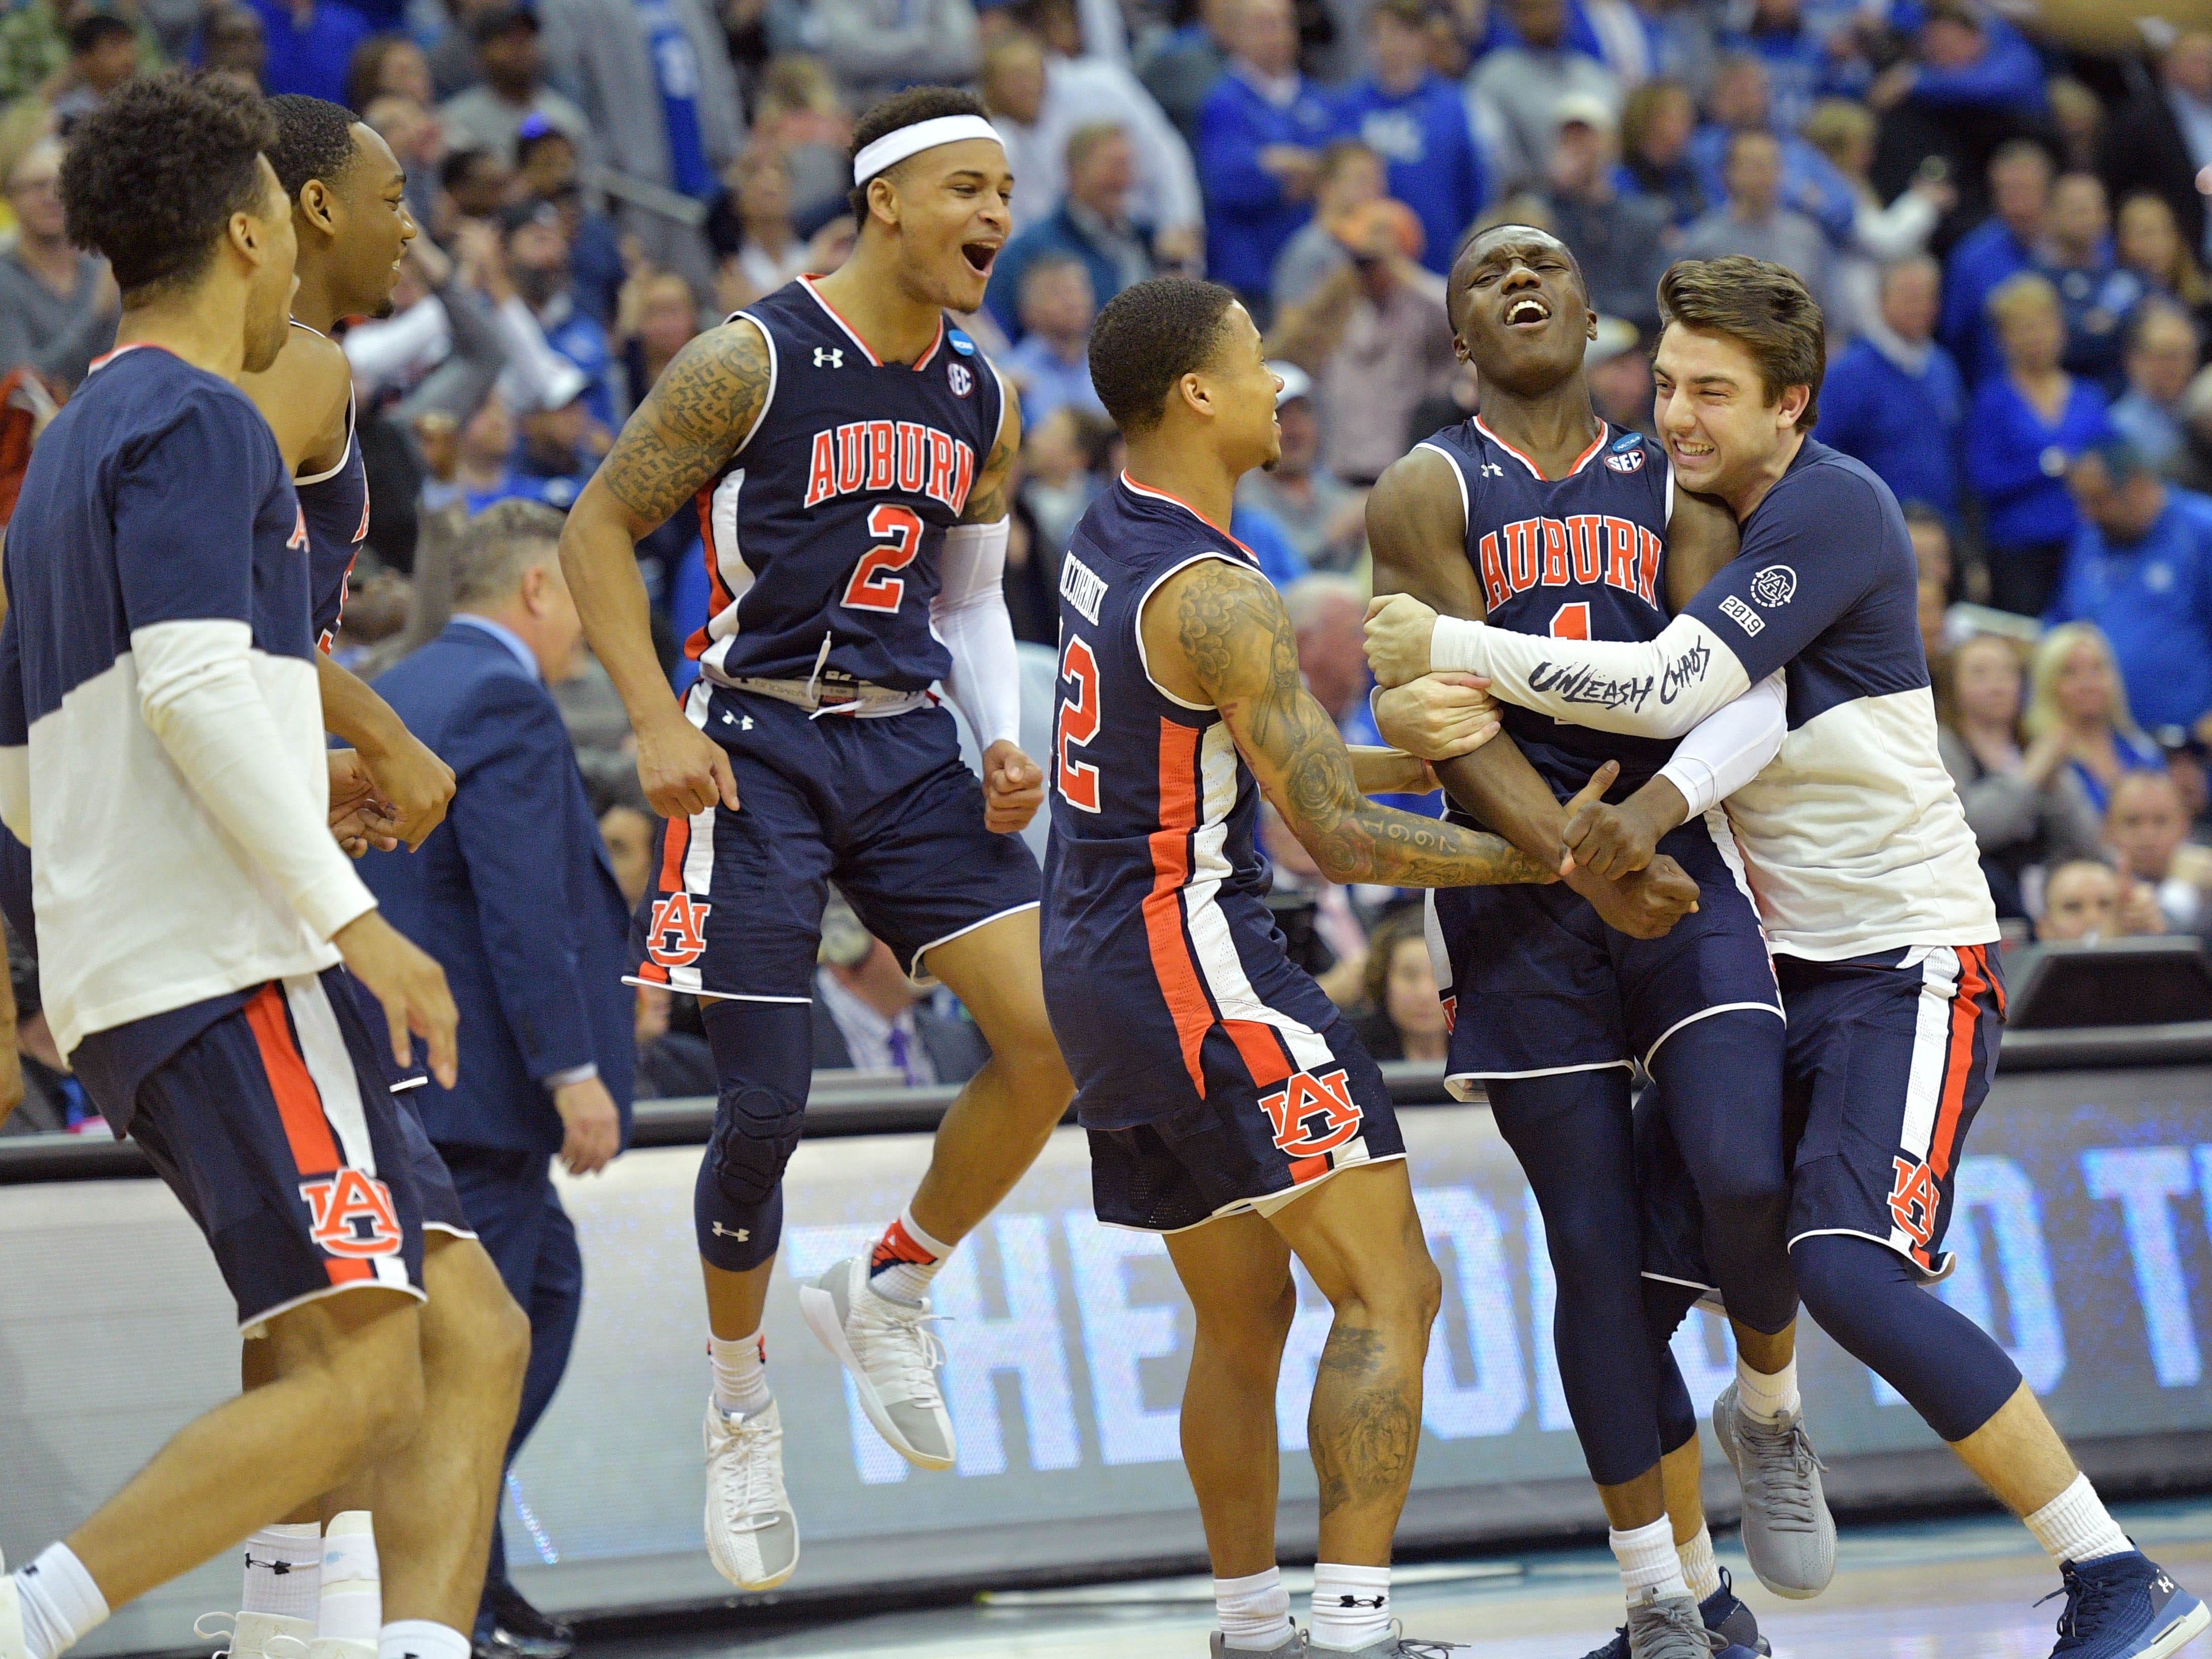 Auburn players including Jared Harper (1) , Bryce Brown (2) and J'Von McCormick (12) celebrate after defeating the Kentucky Wildcats in the championship game of the midwest regional of the 2019 NCAA Tournament at Sprint Center on March 31, 2019, in Kansas City.